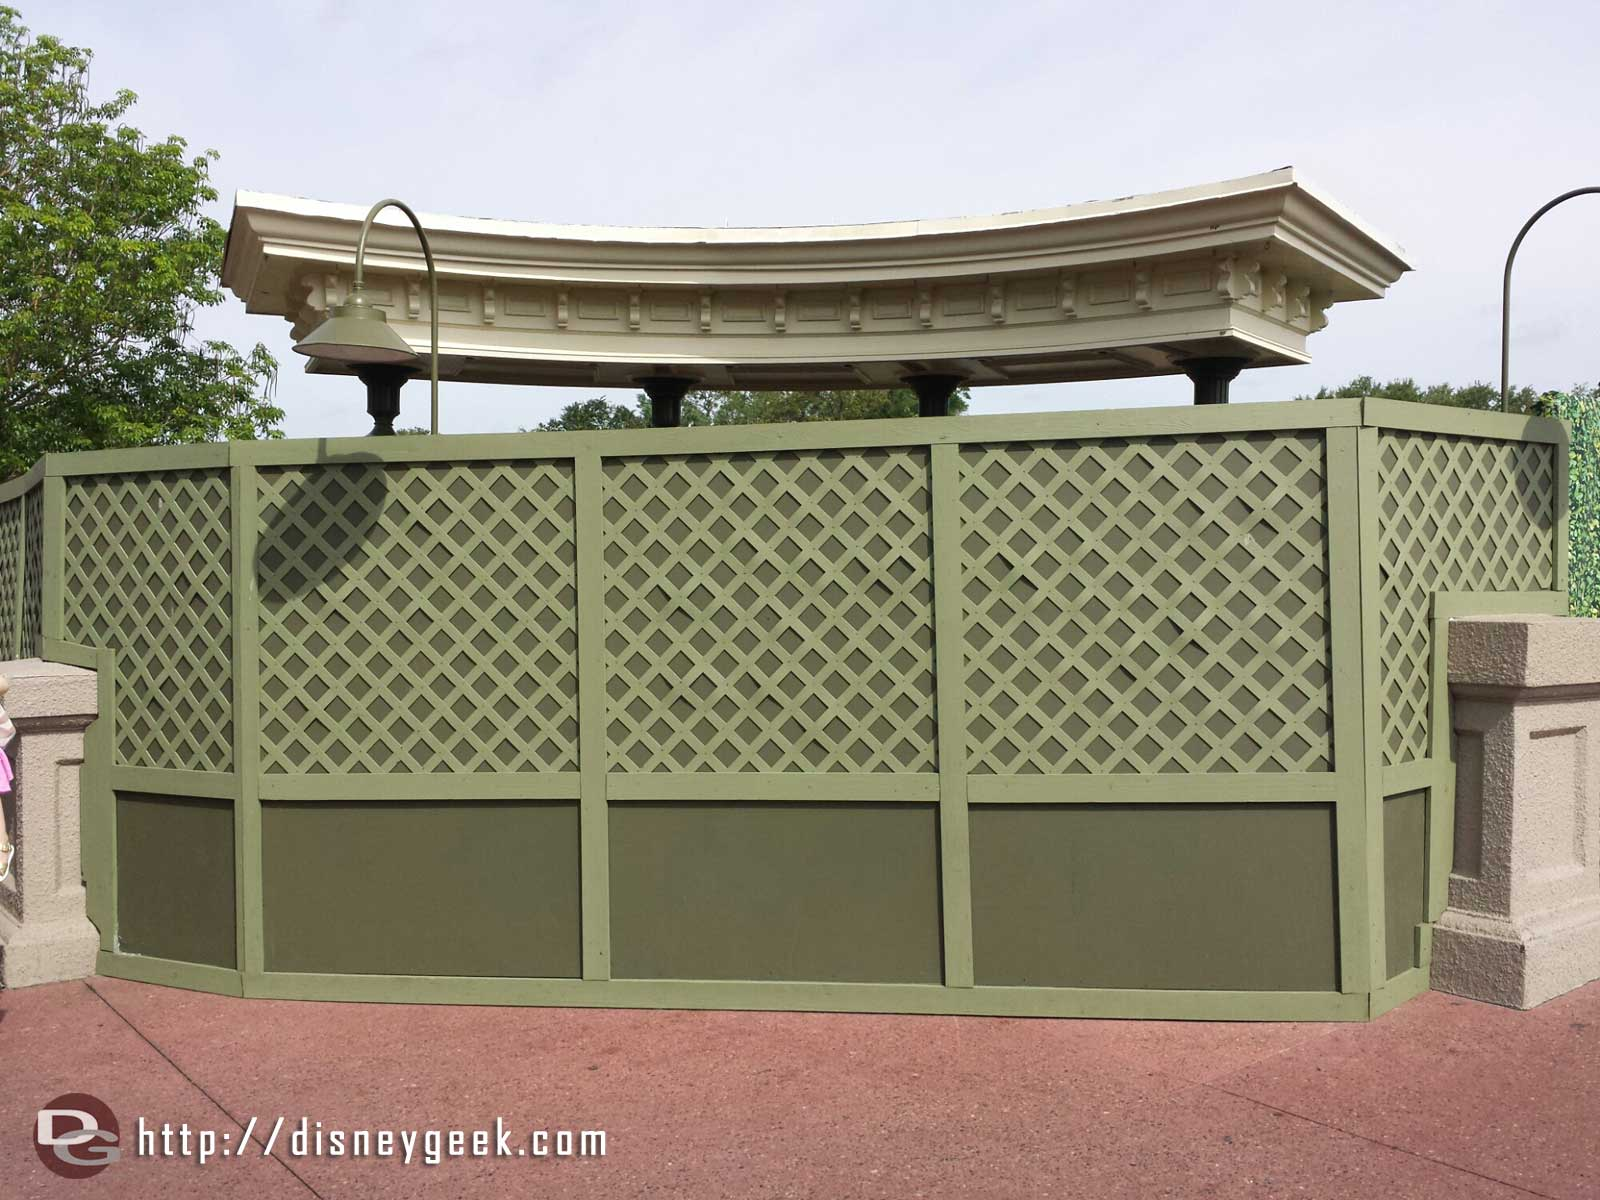 No Magic Kingdom lineboard pics this trip since its behind the walls and looks like its being removed.